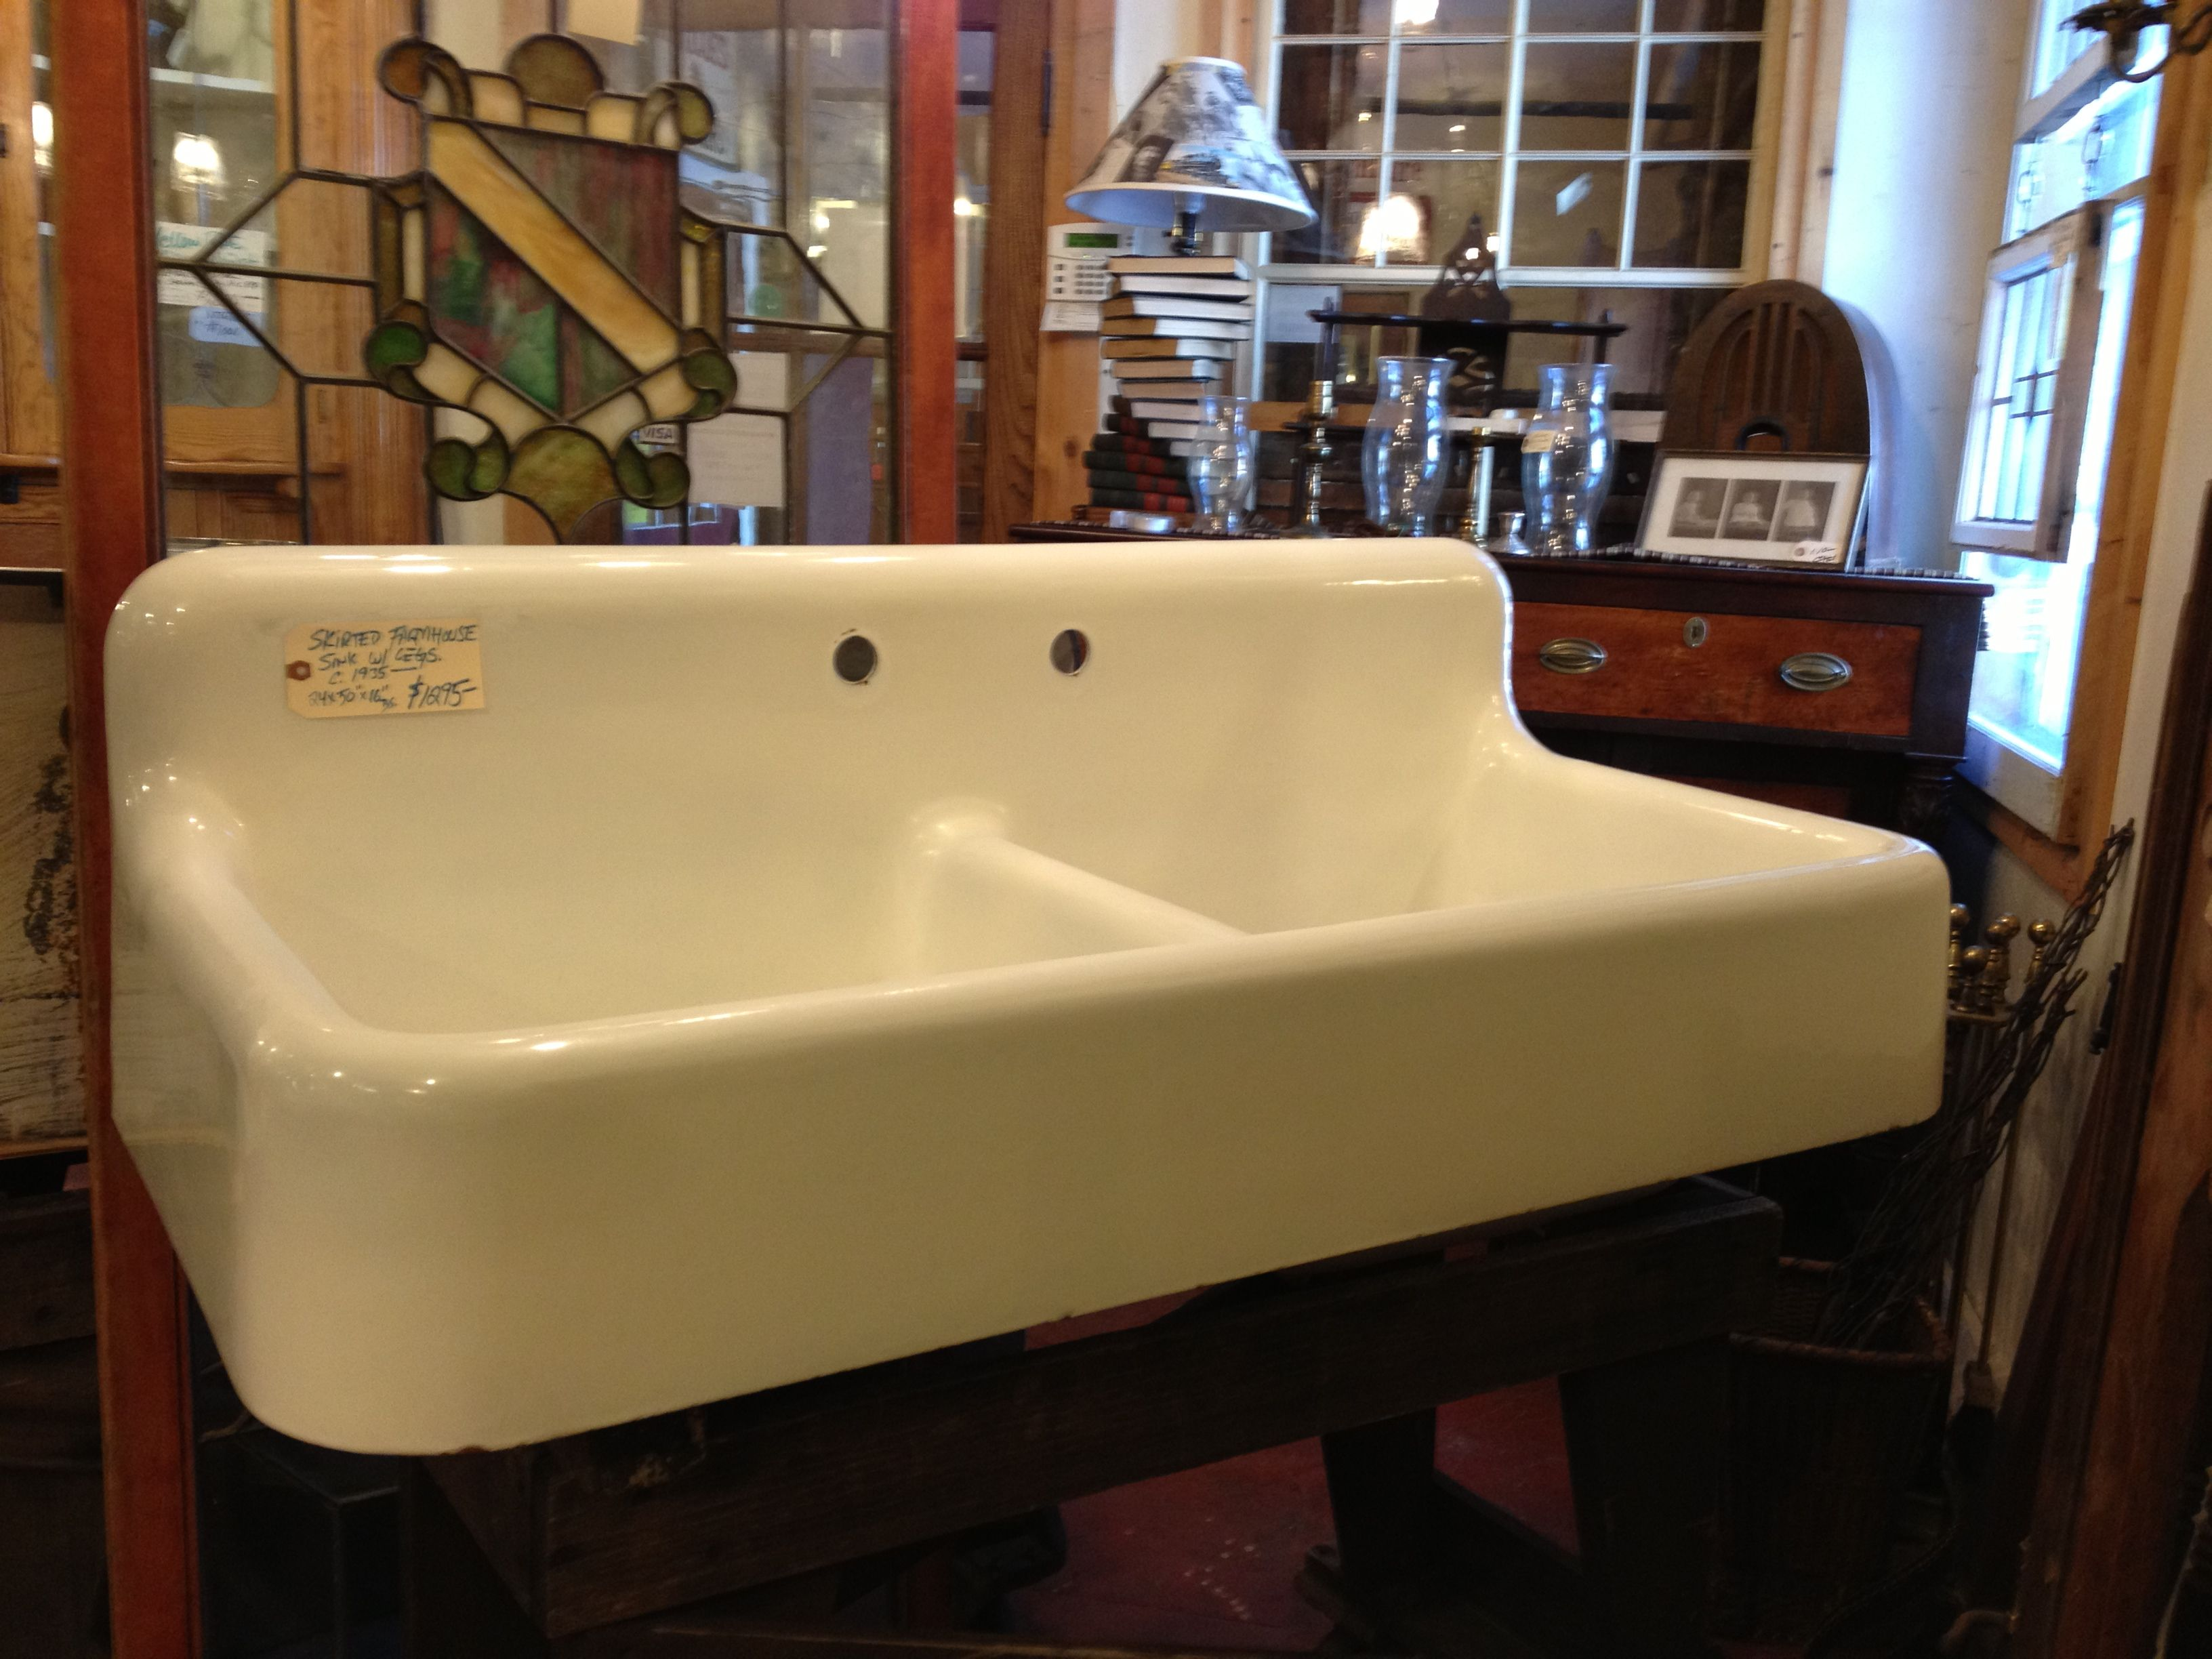 Dream sink on sale at Masons Brothers Architectural Salvage in ...